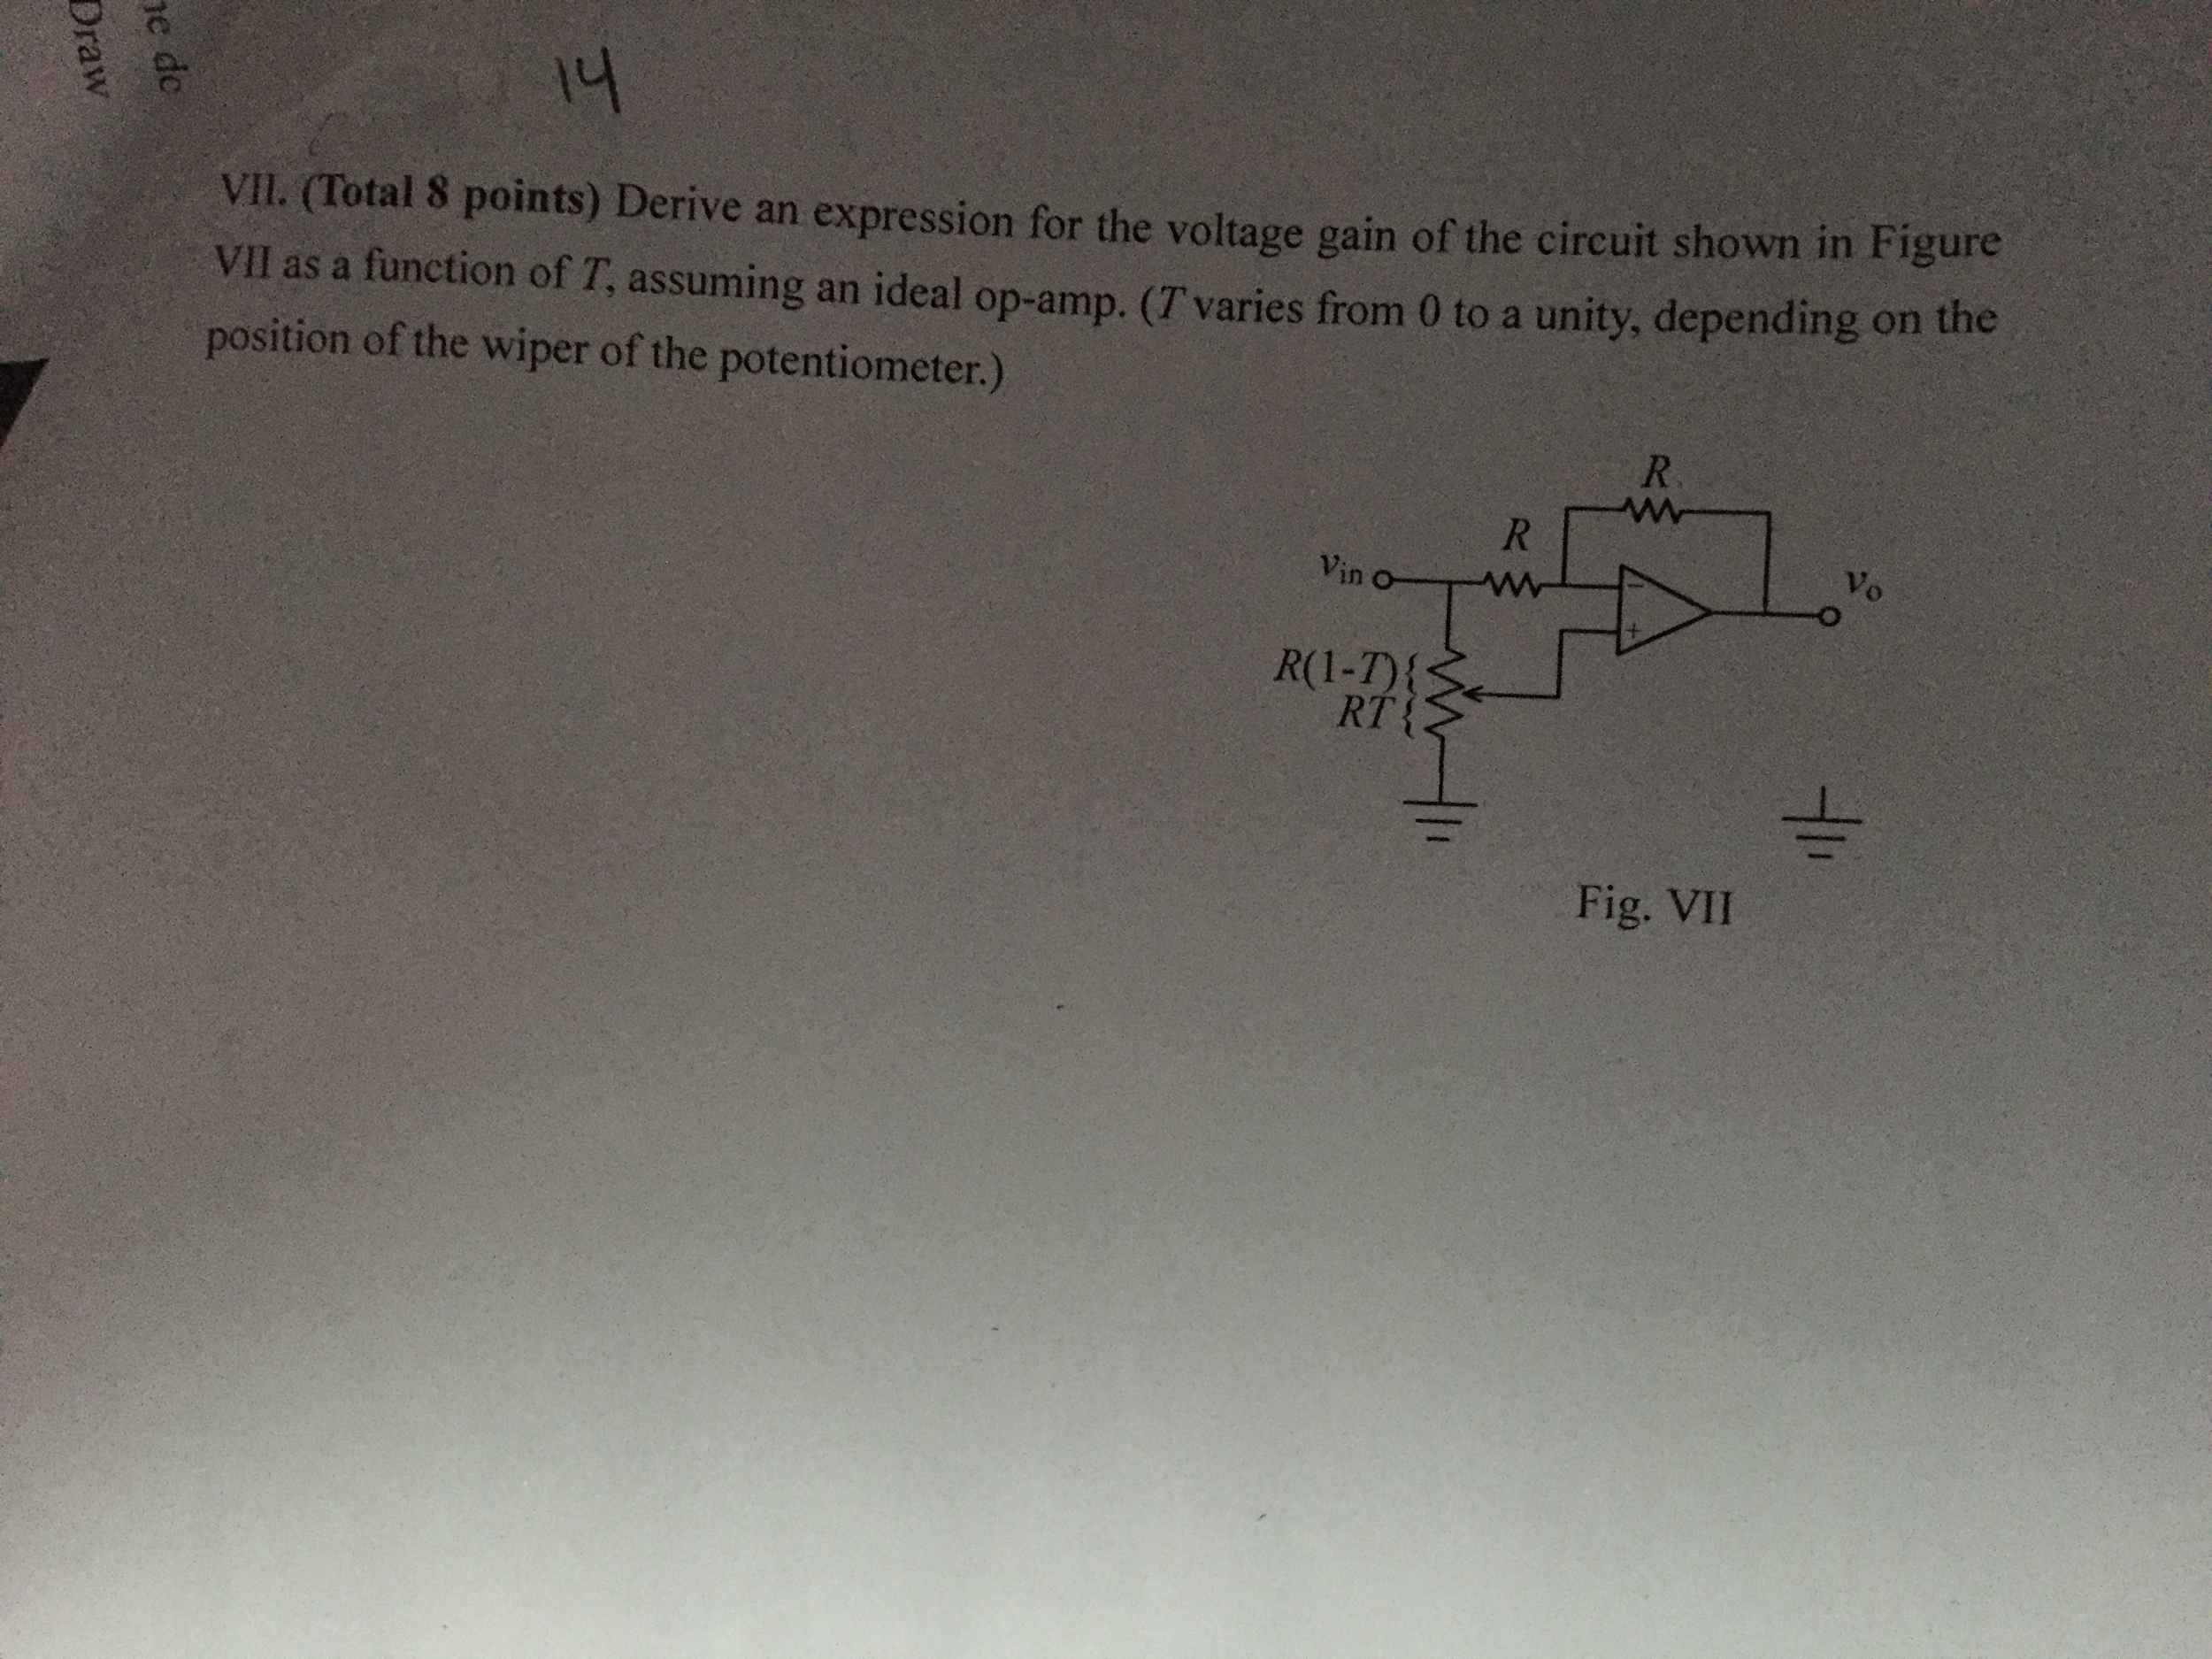 Derive an expression for the voltage gain of the c